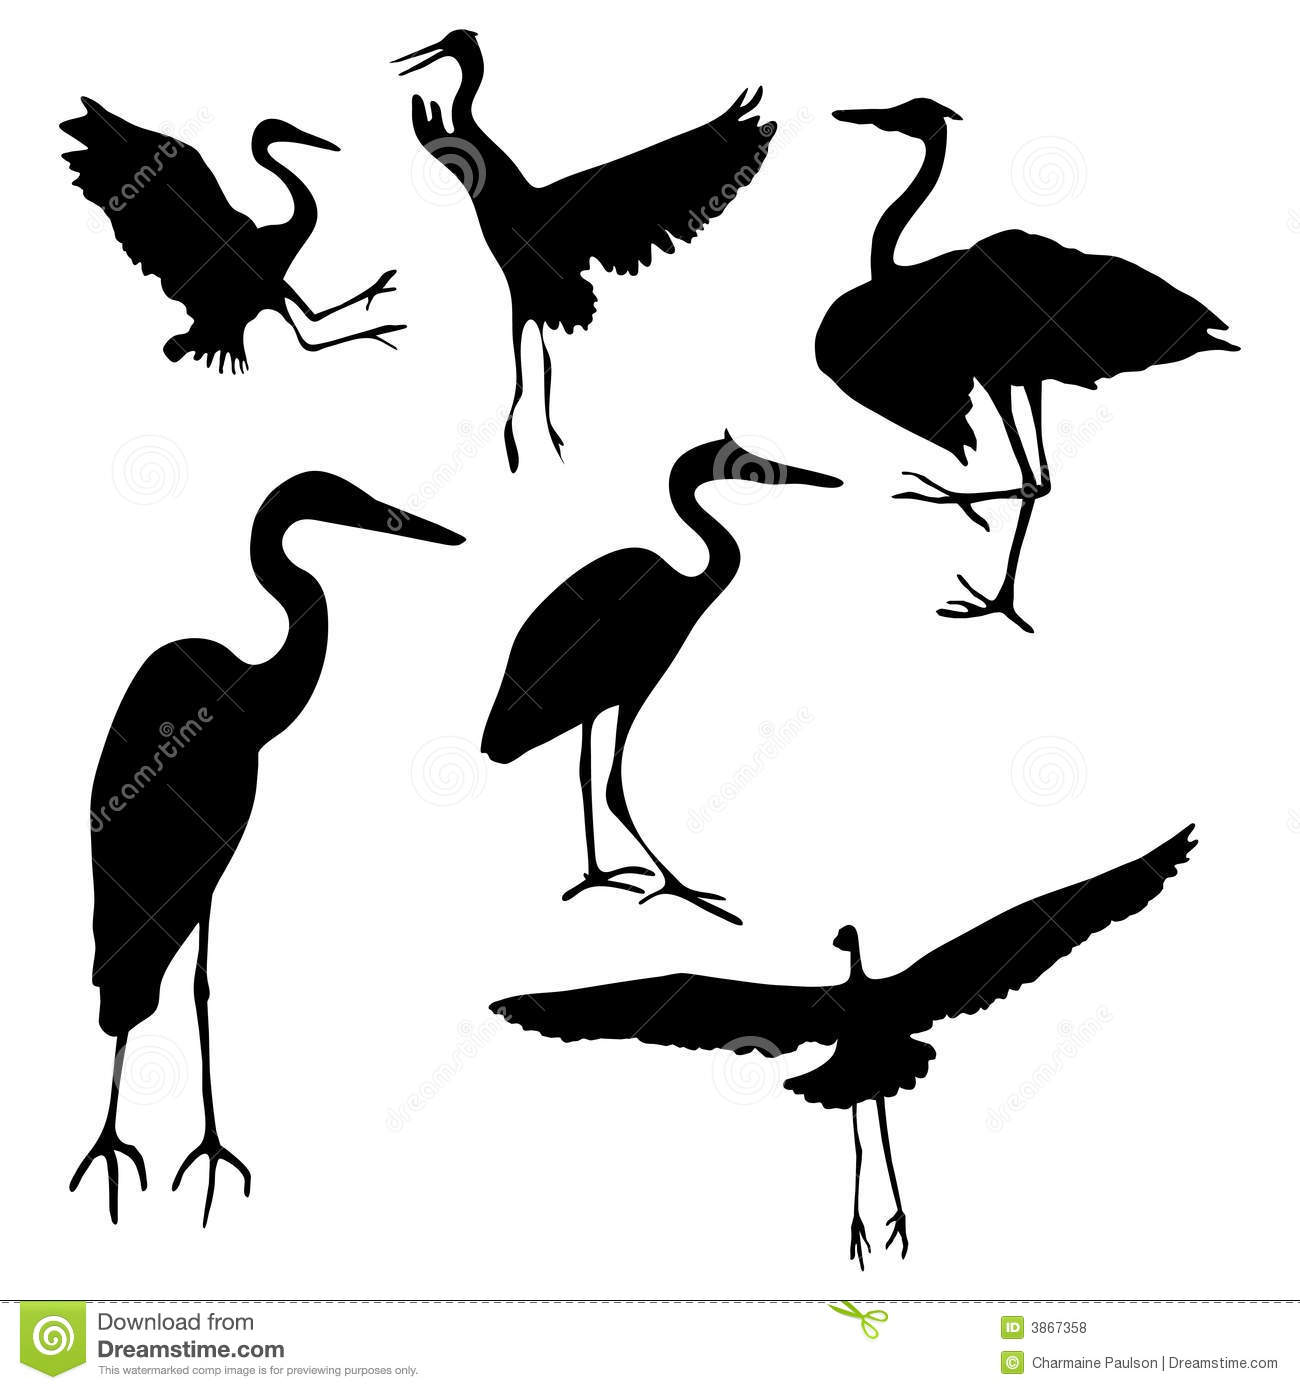 Blue Heron clipart #6, Download drawings